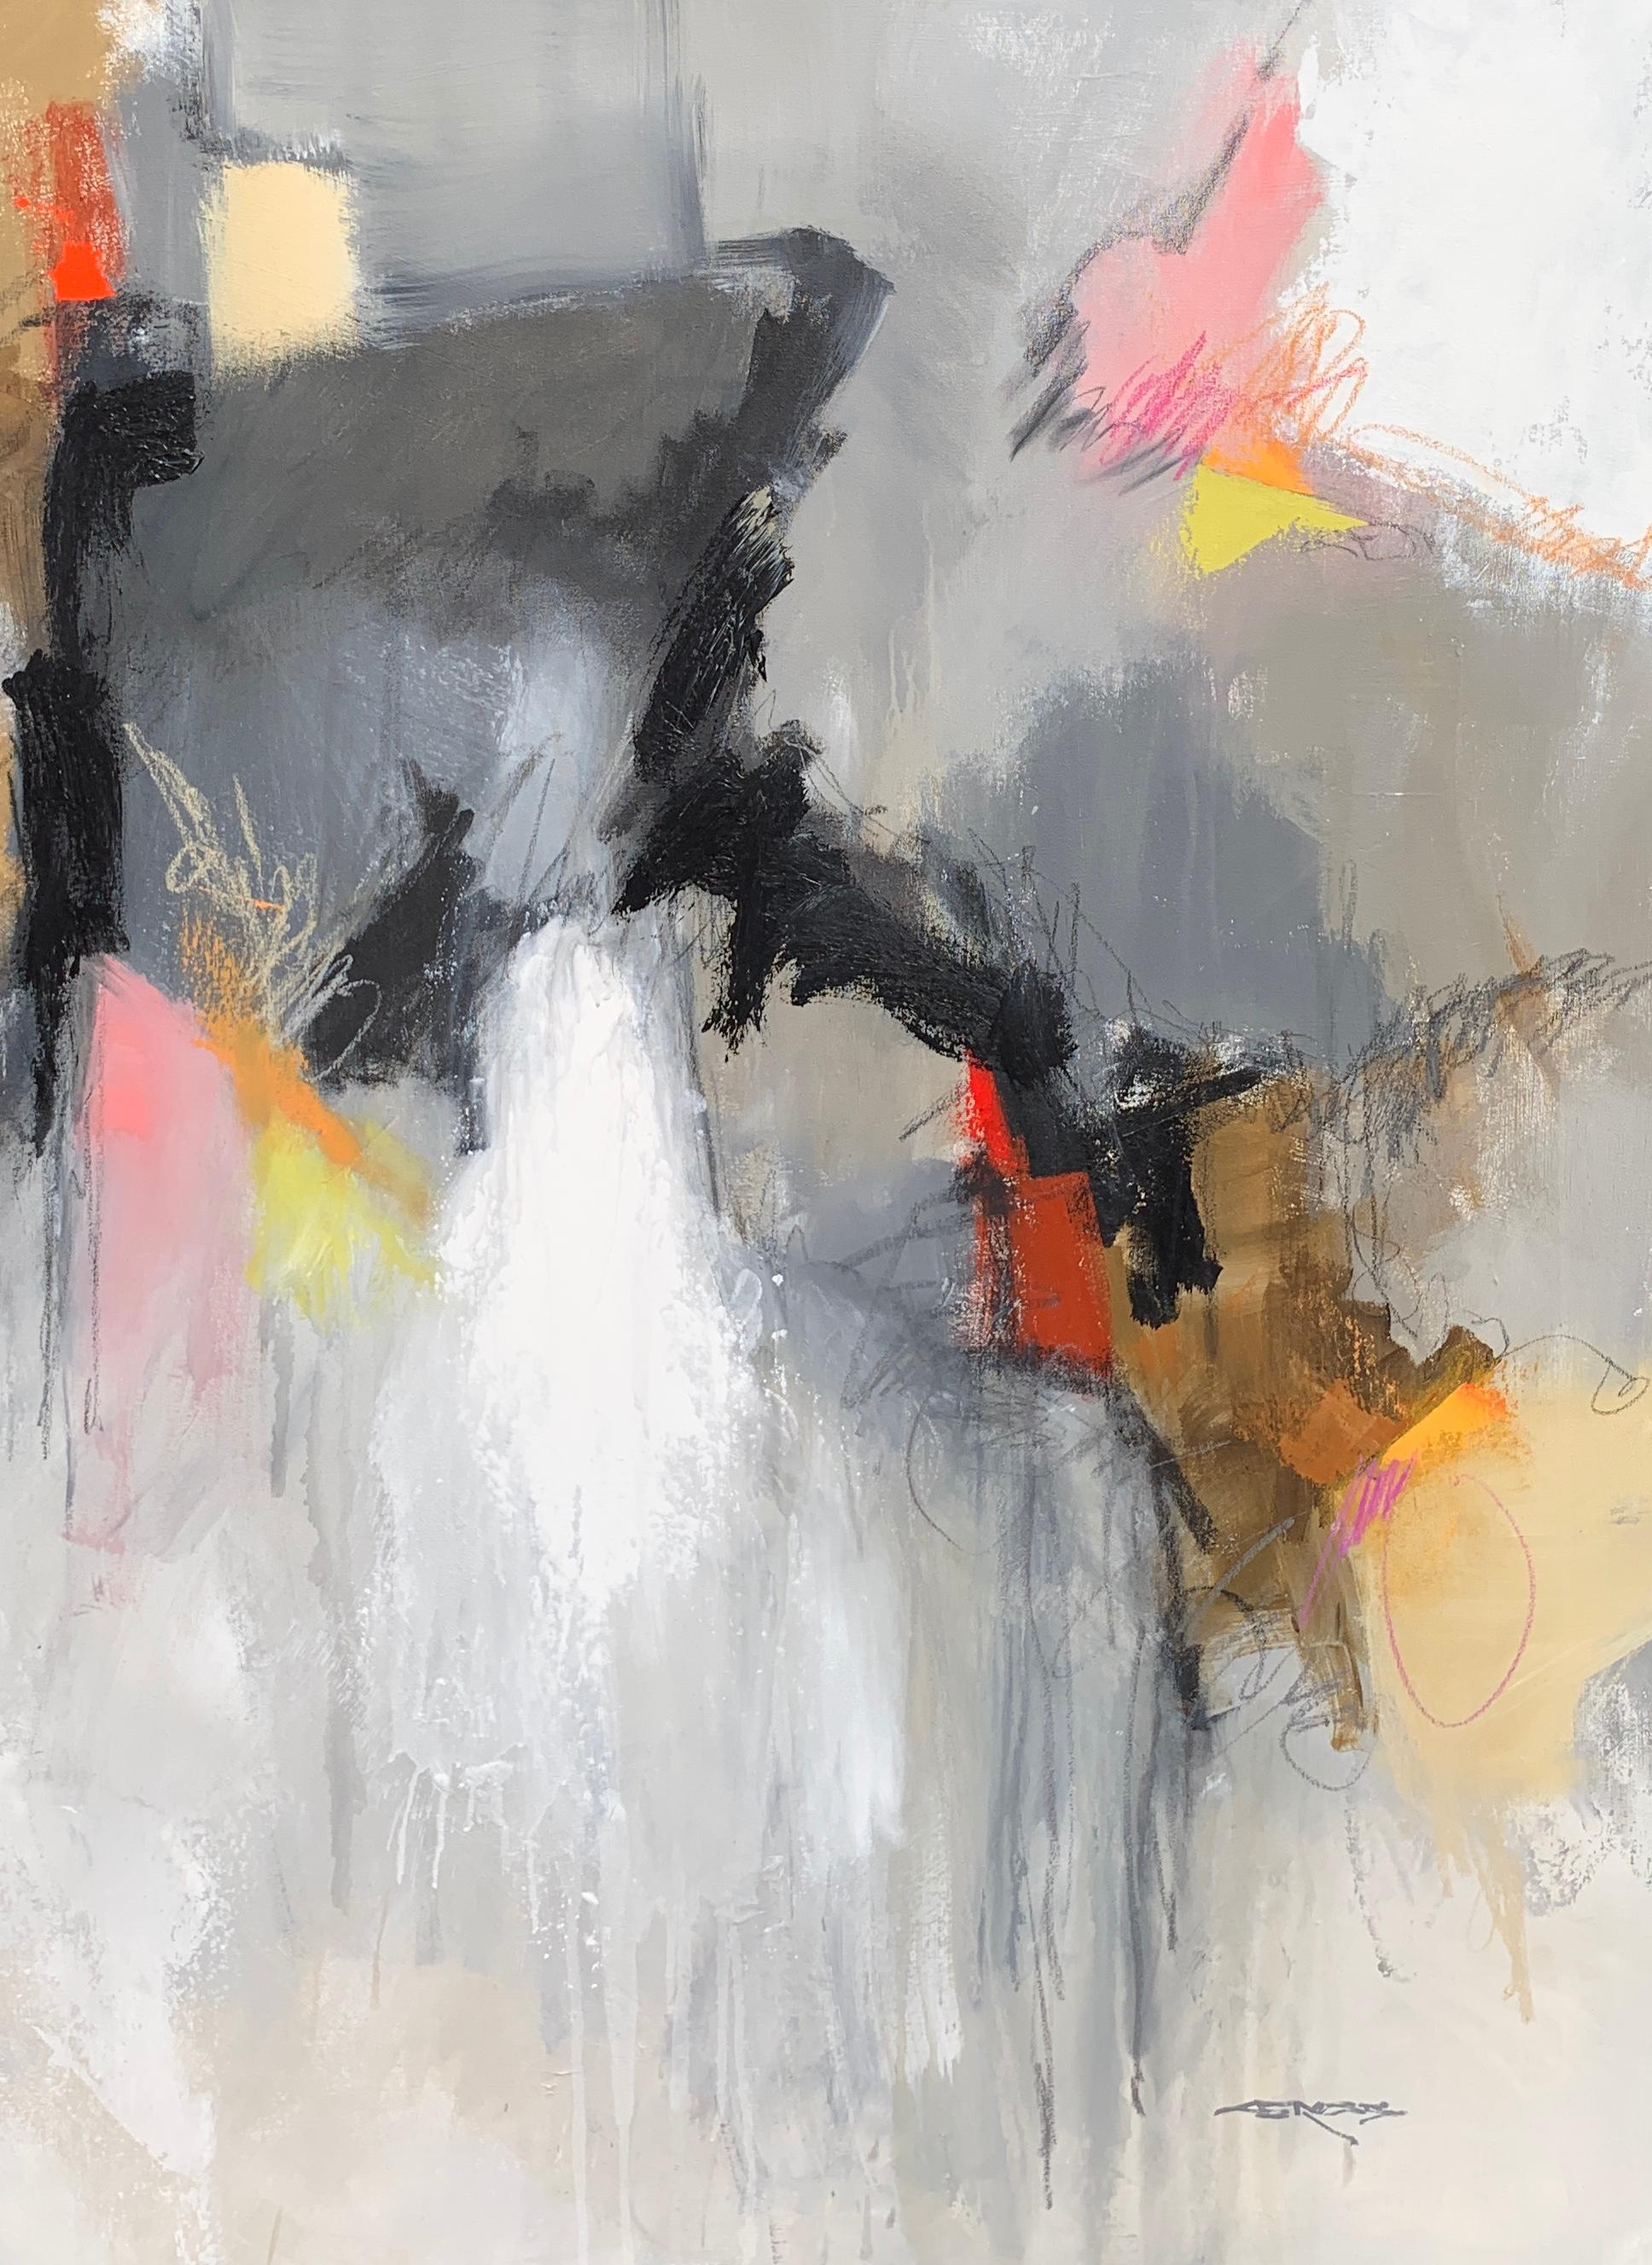 Rust and Stardust II by Charles Ross Large Abstract Oil and Mixed Media Painting